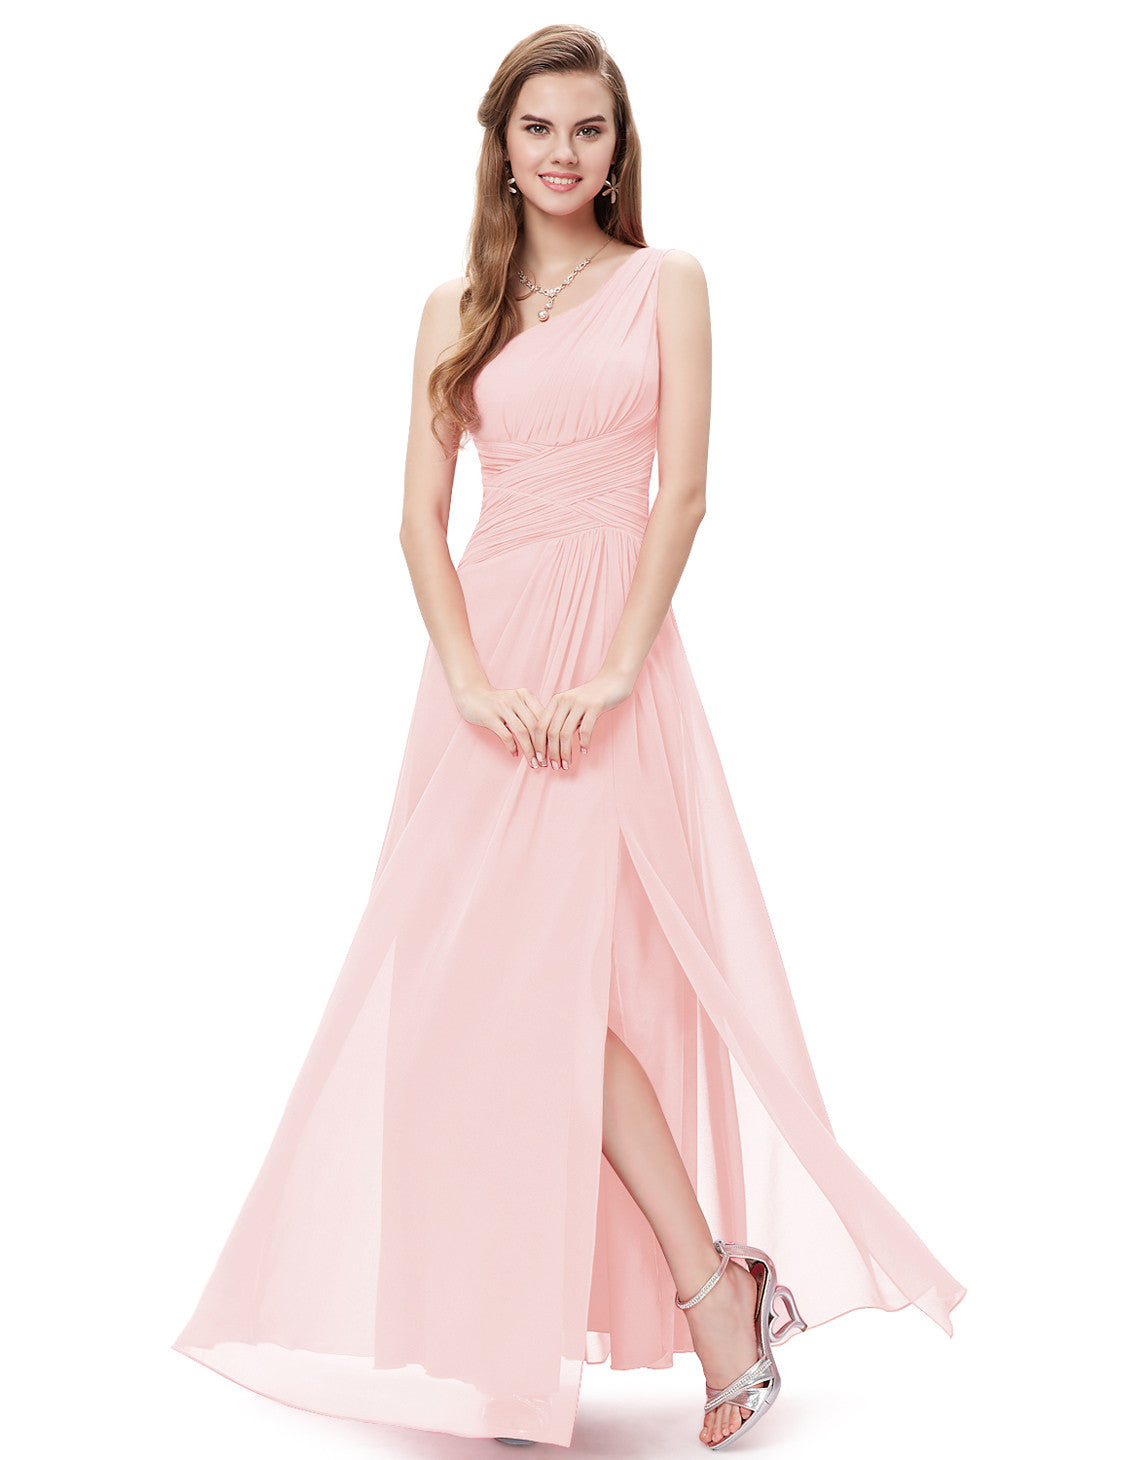 Obeige Pink One Shoulder Long Evening Dress - O'beige